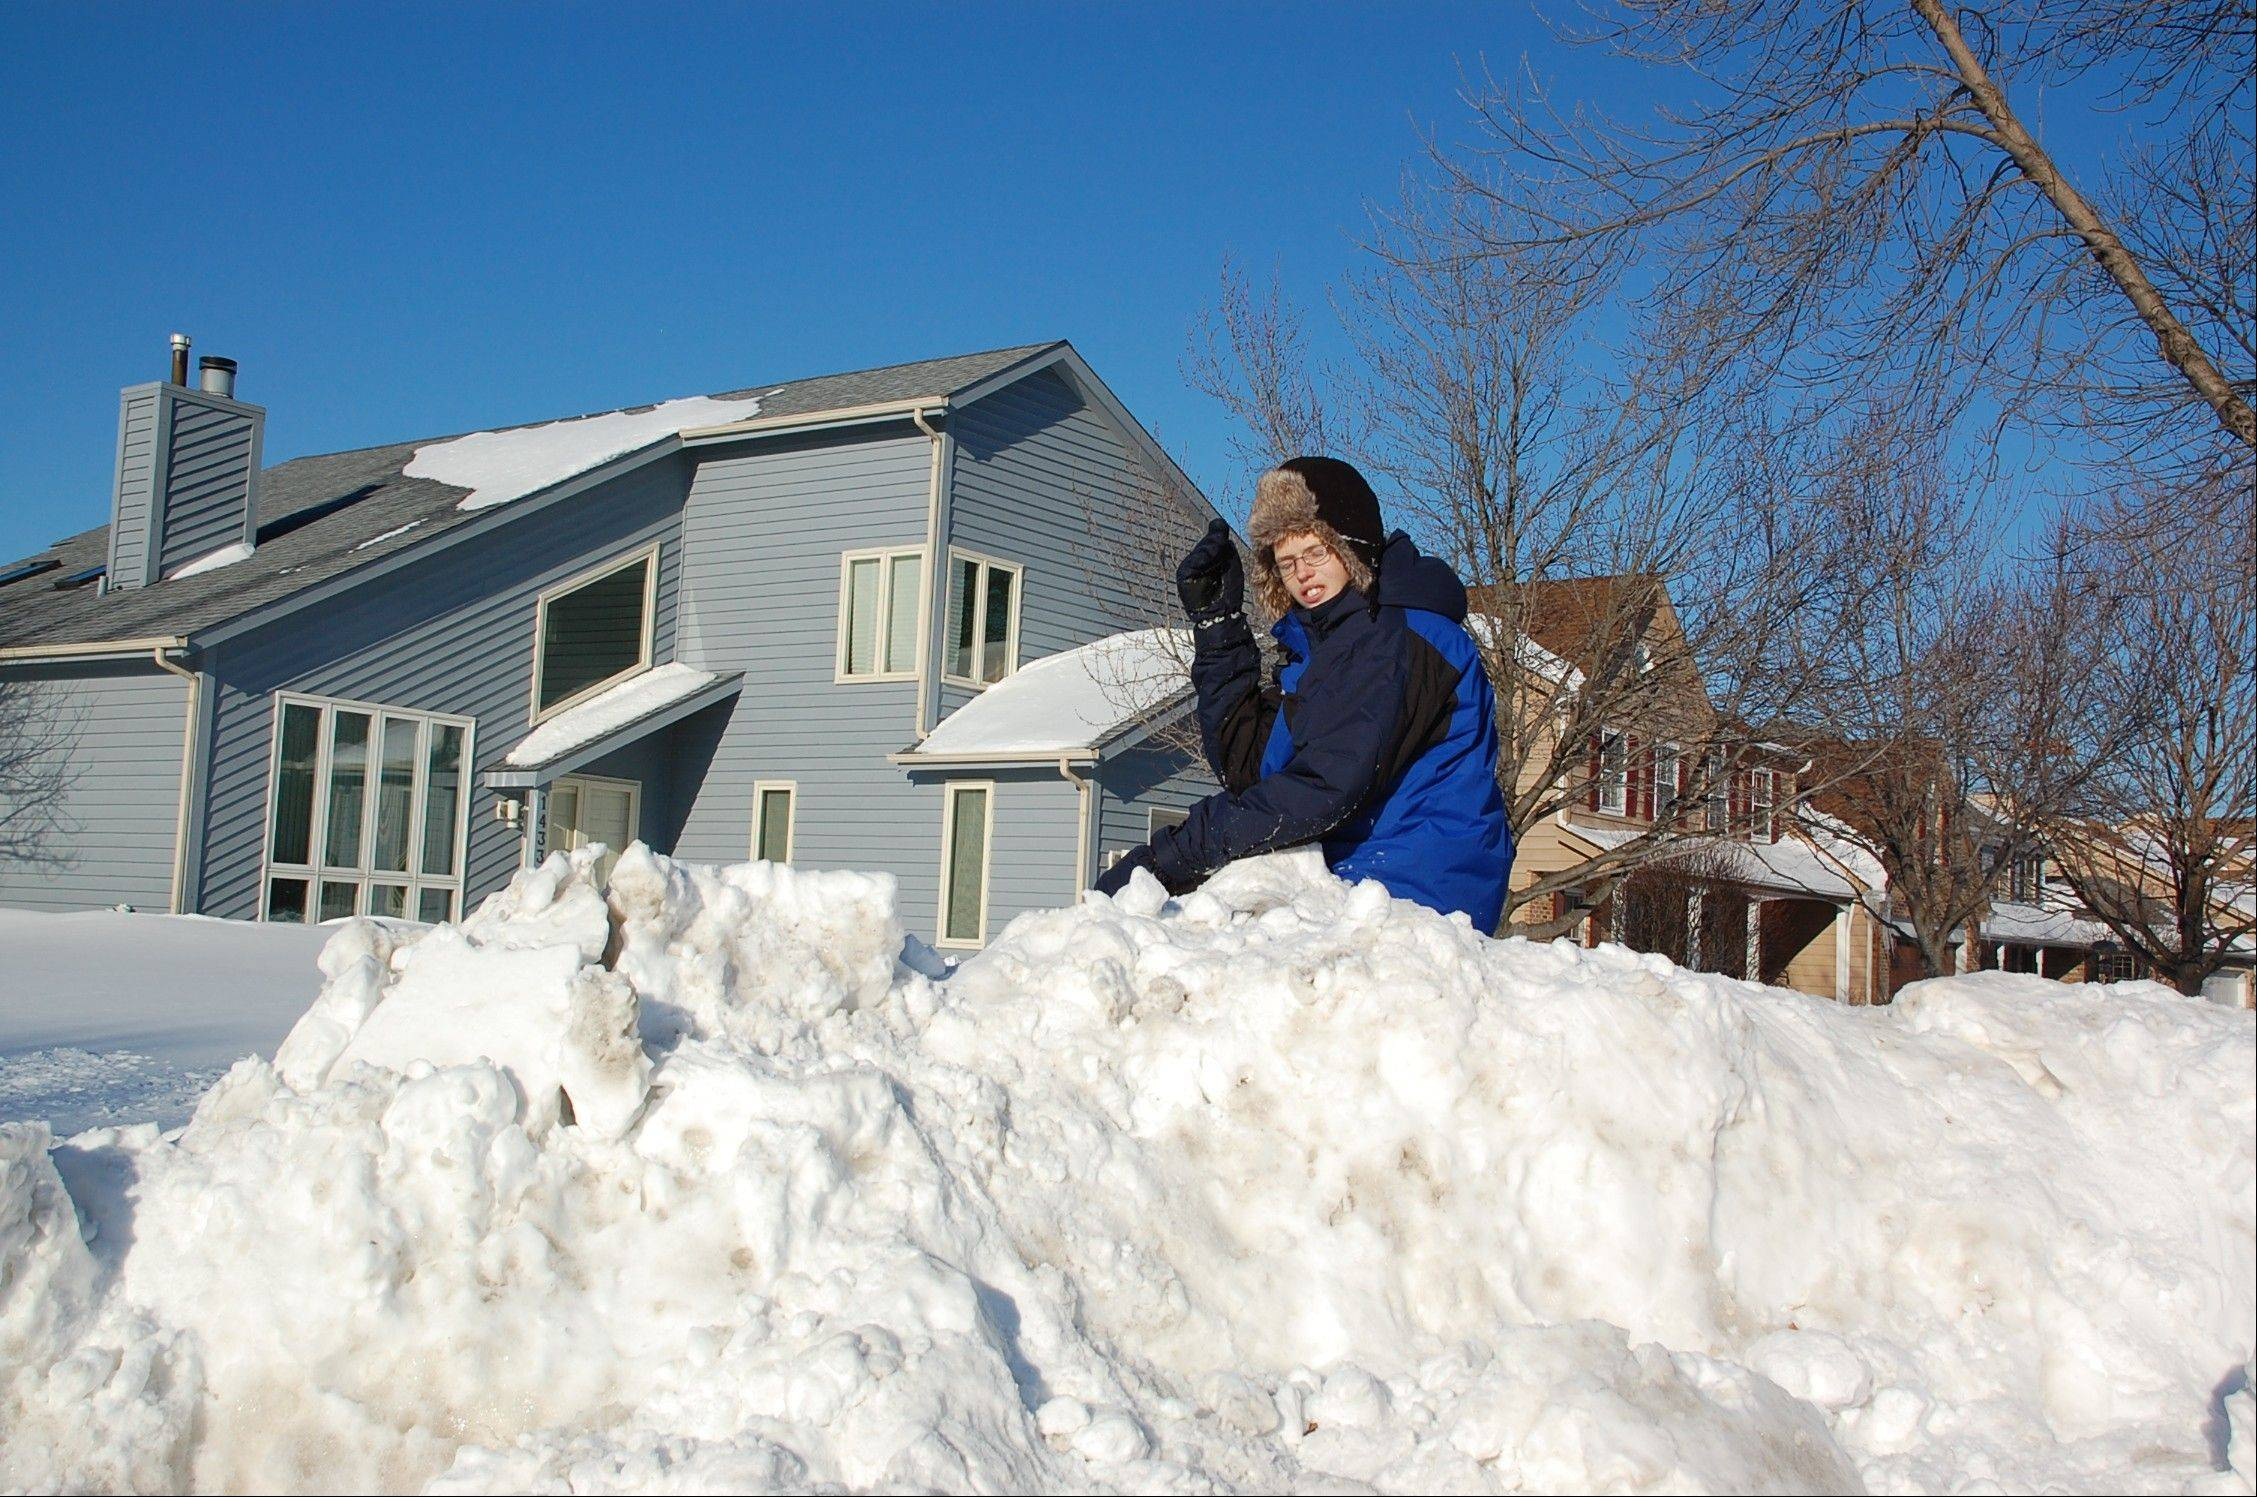 Naperville's Luke Koupal atop a snow bank on Groundhog Day 2011.